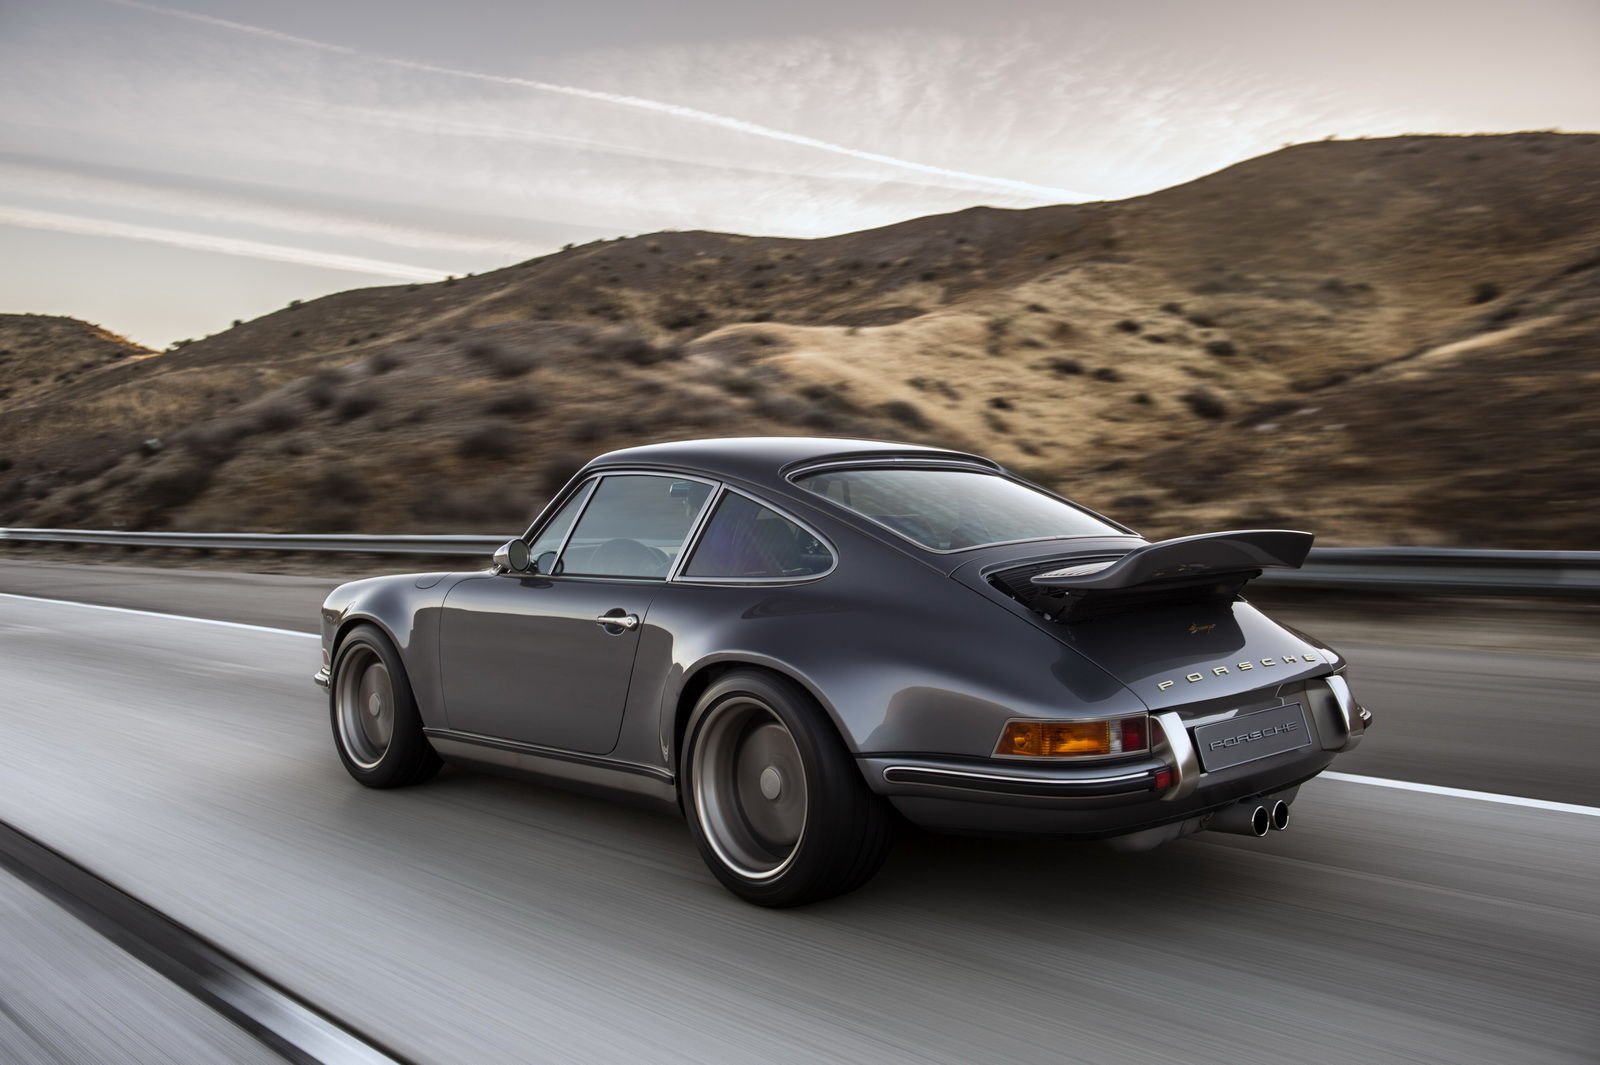 This Guy Couldn't Decide Which Singer 911 He Wanted, So He Bought Two